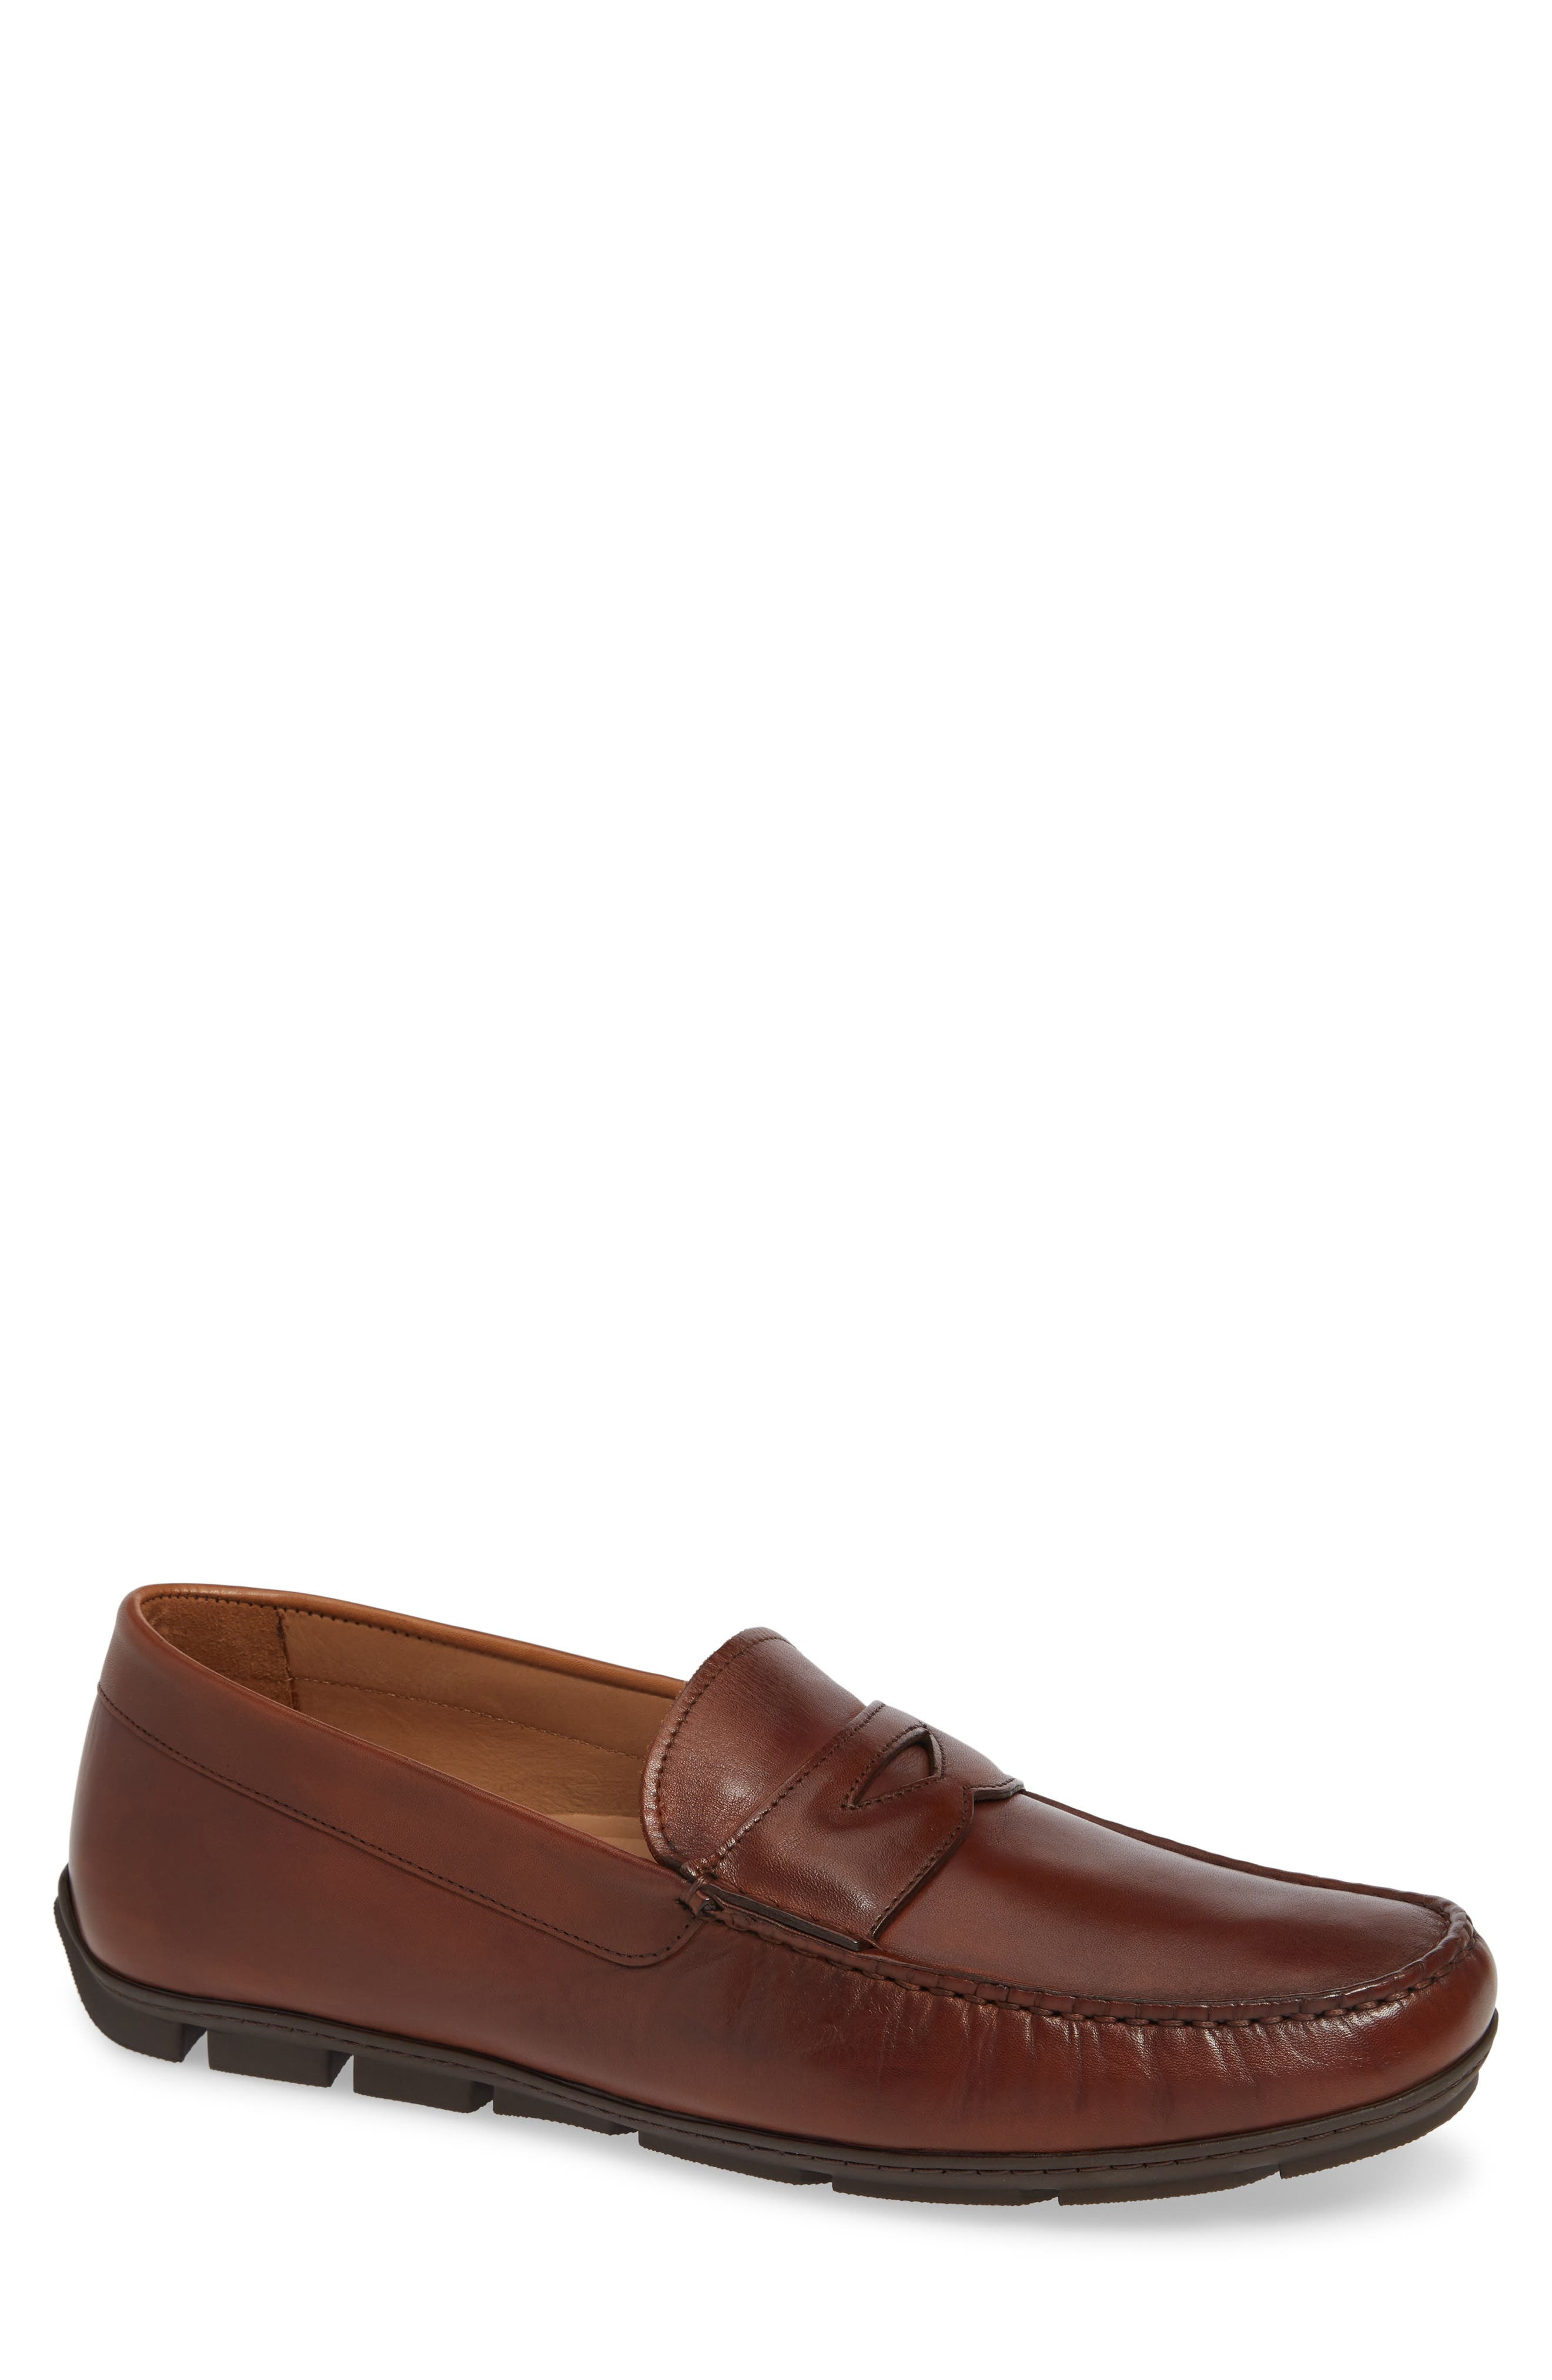 VINCE CAMUTO, Ditto Driving Shoe, Main thumbnail 1, color, COGNAC LEATHER